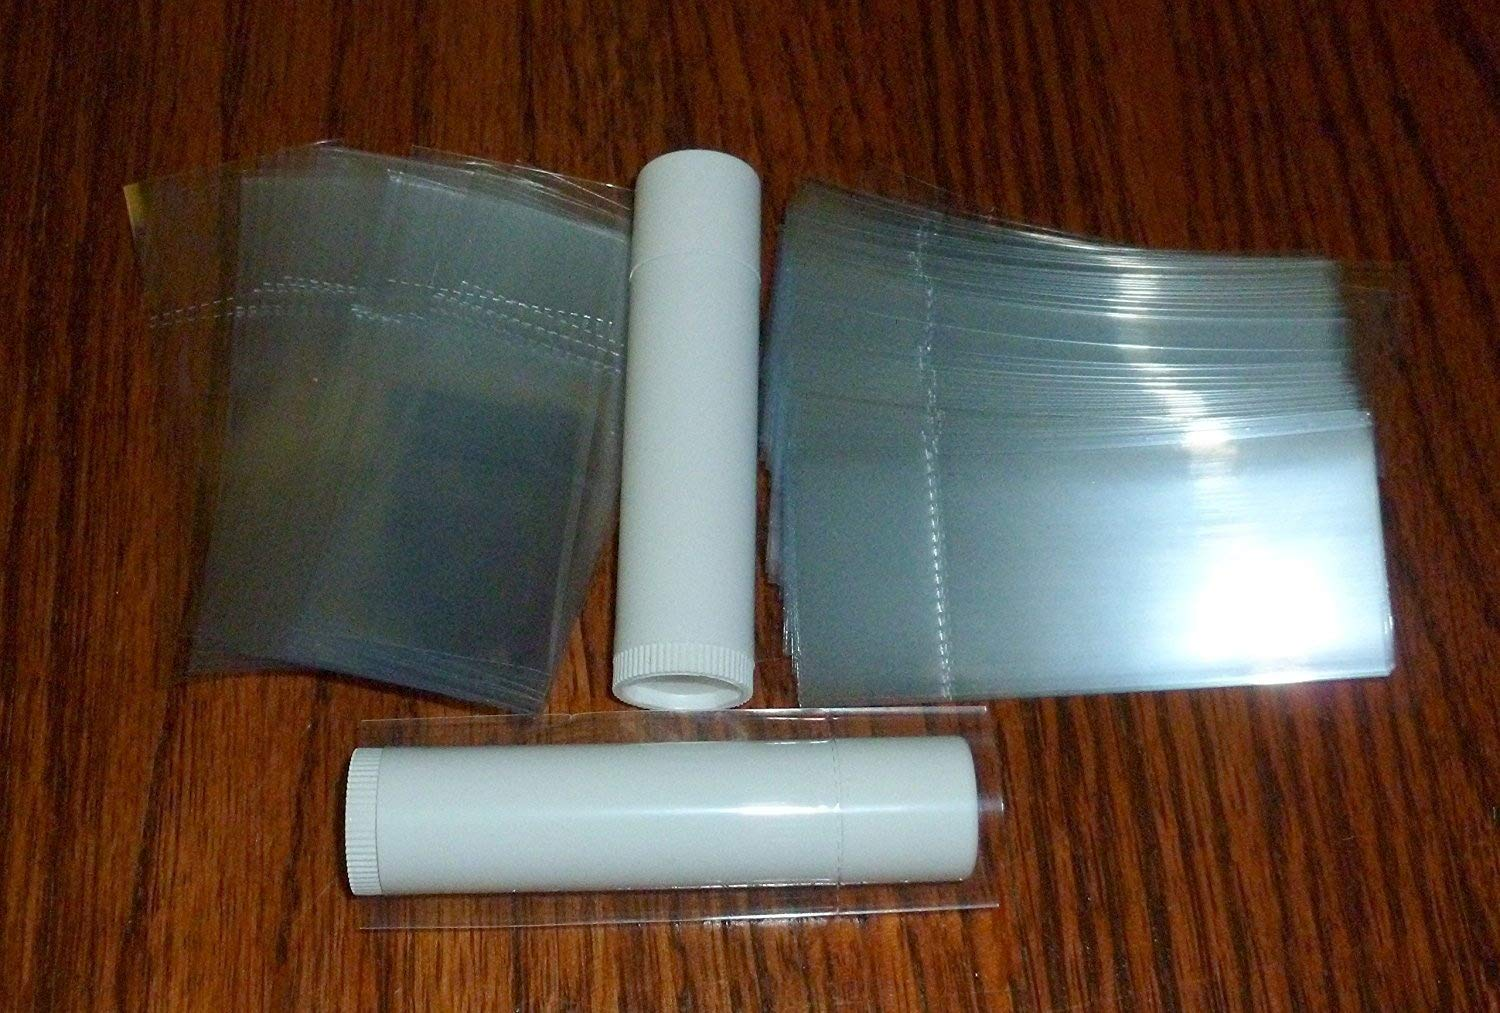 Tubes Tamper Evident Safety Seal Chapstick 250 Clear Shrink Wrap Bands Sleeves for Lip Balm